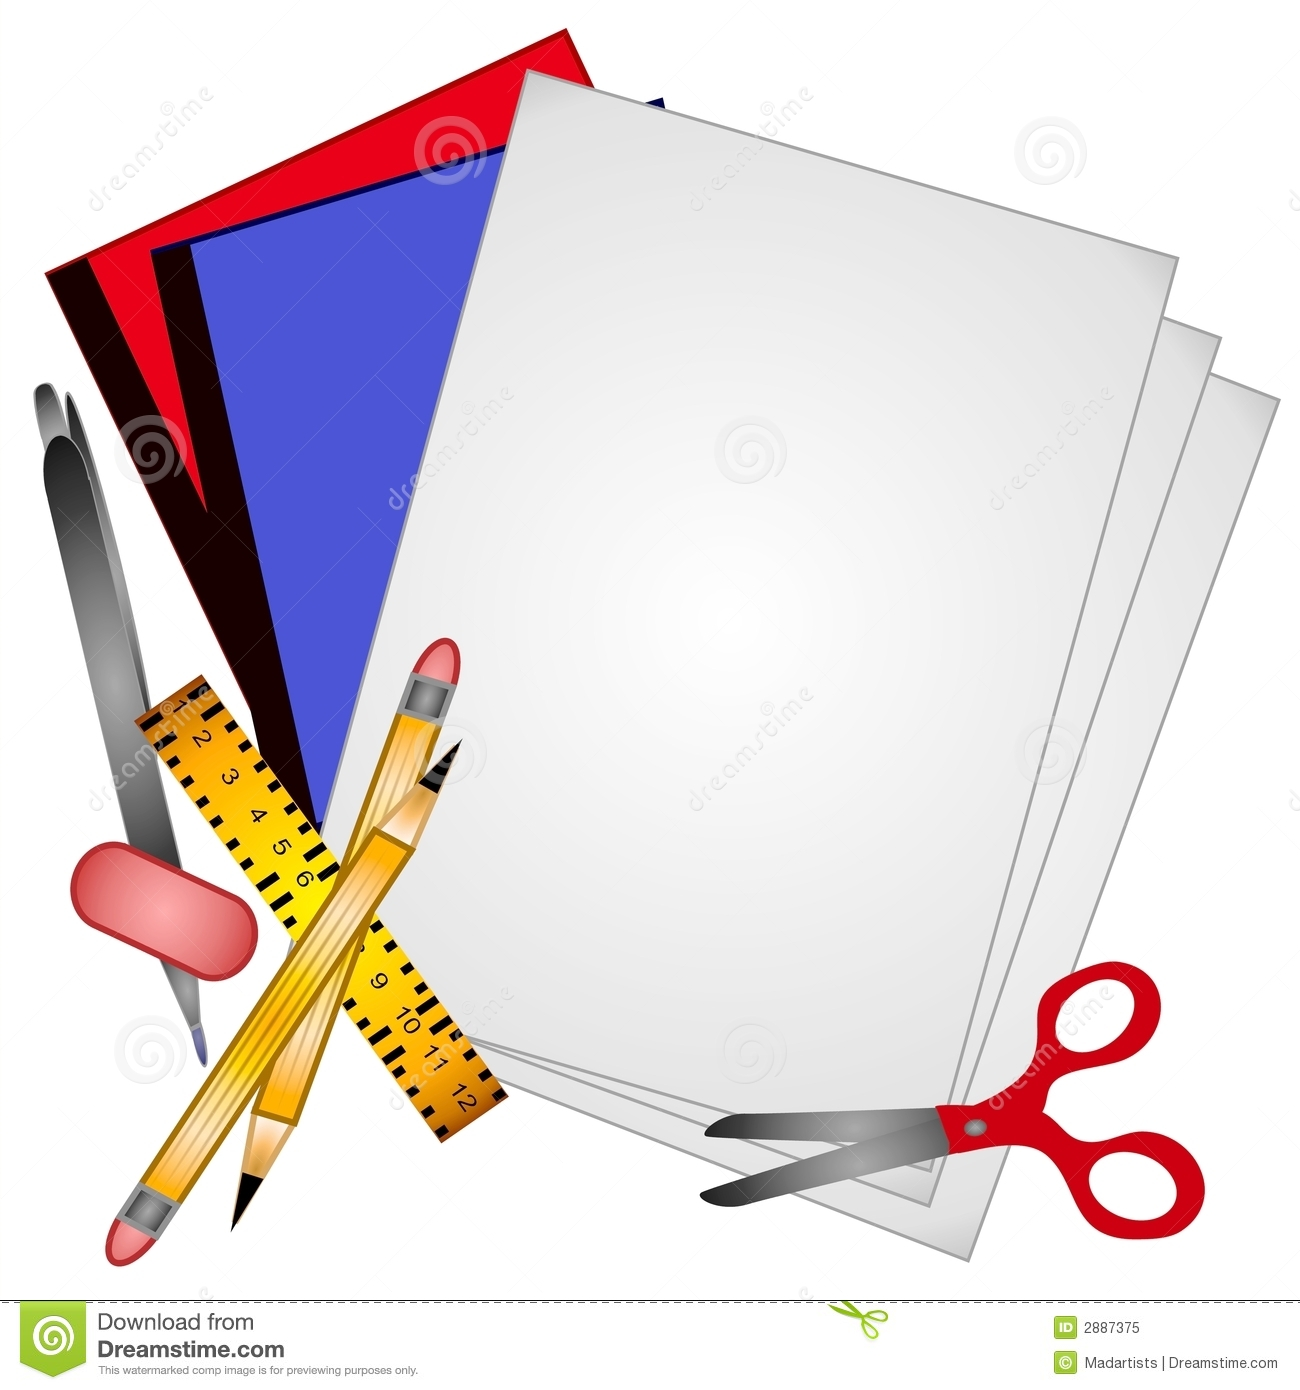 school supplies clip art 3 clipart panda free clipart images rh clipartpanda com clipart images of school supplies clip art of school supplies & clothing